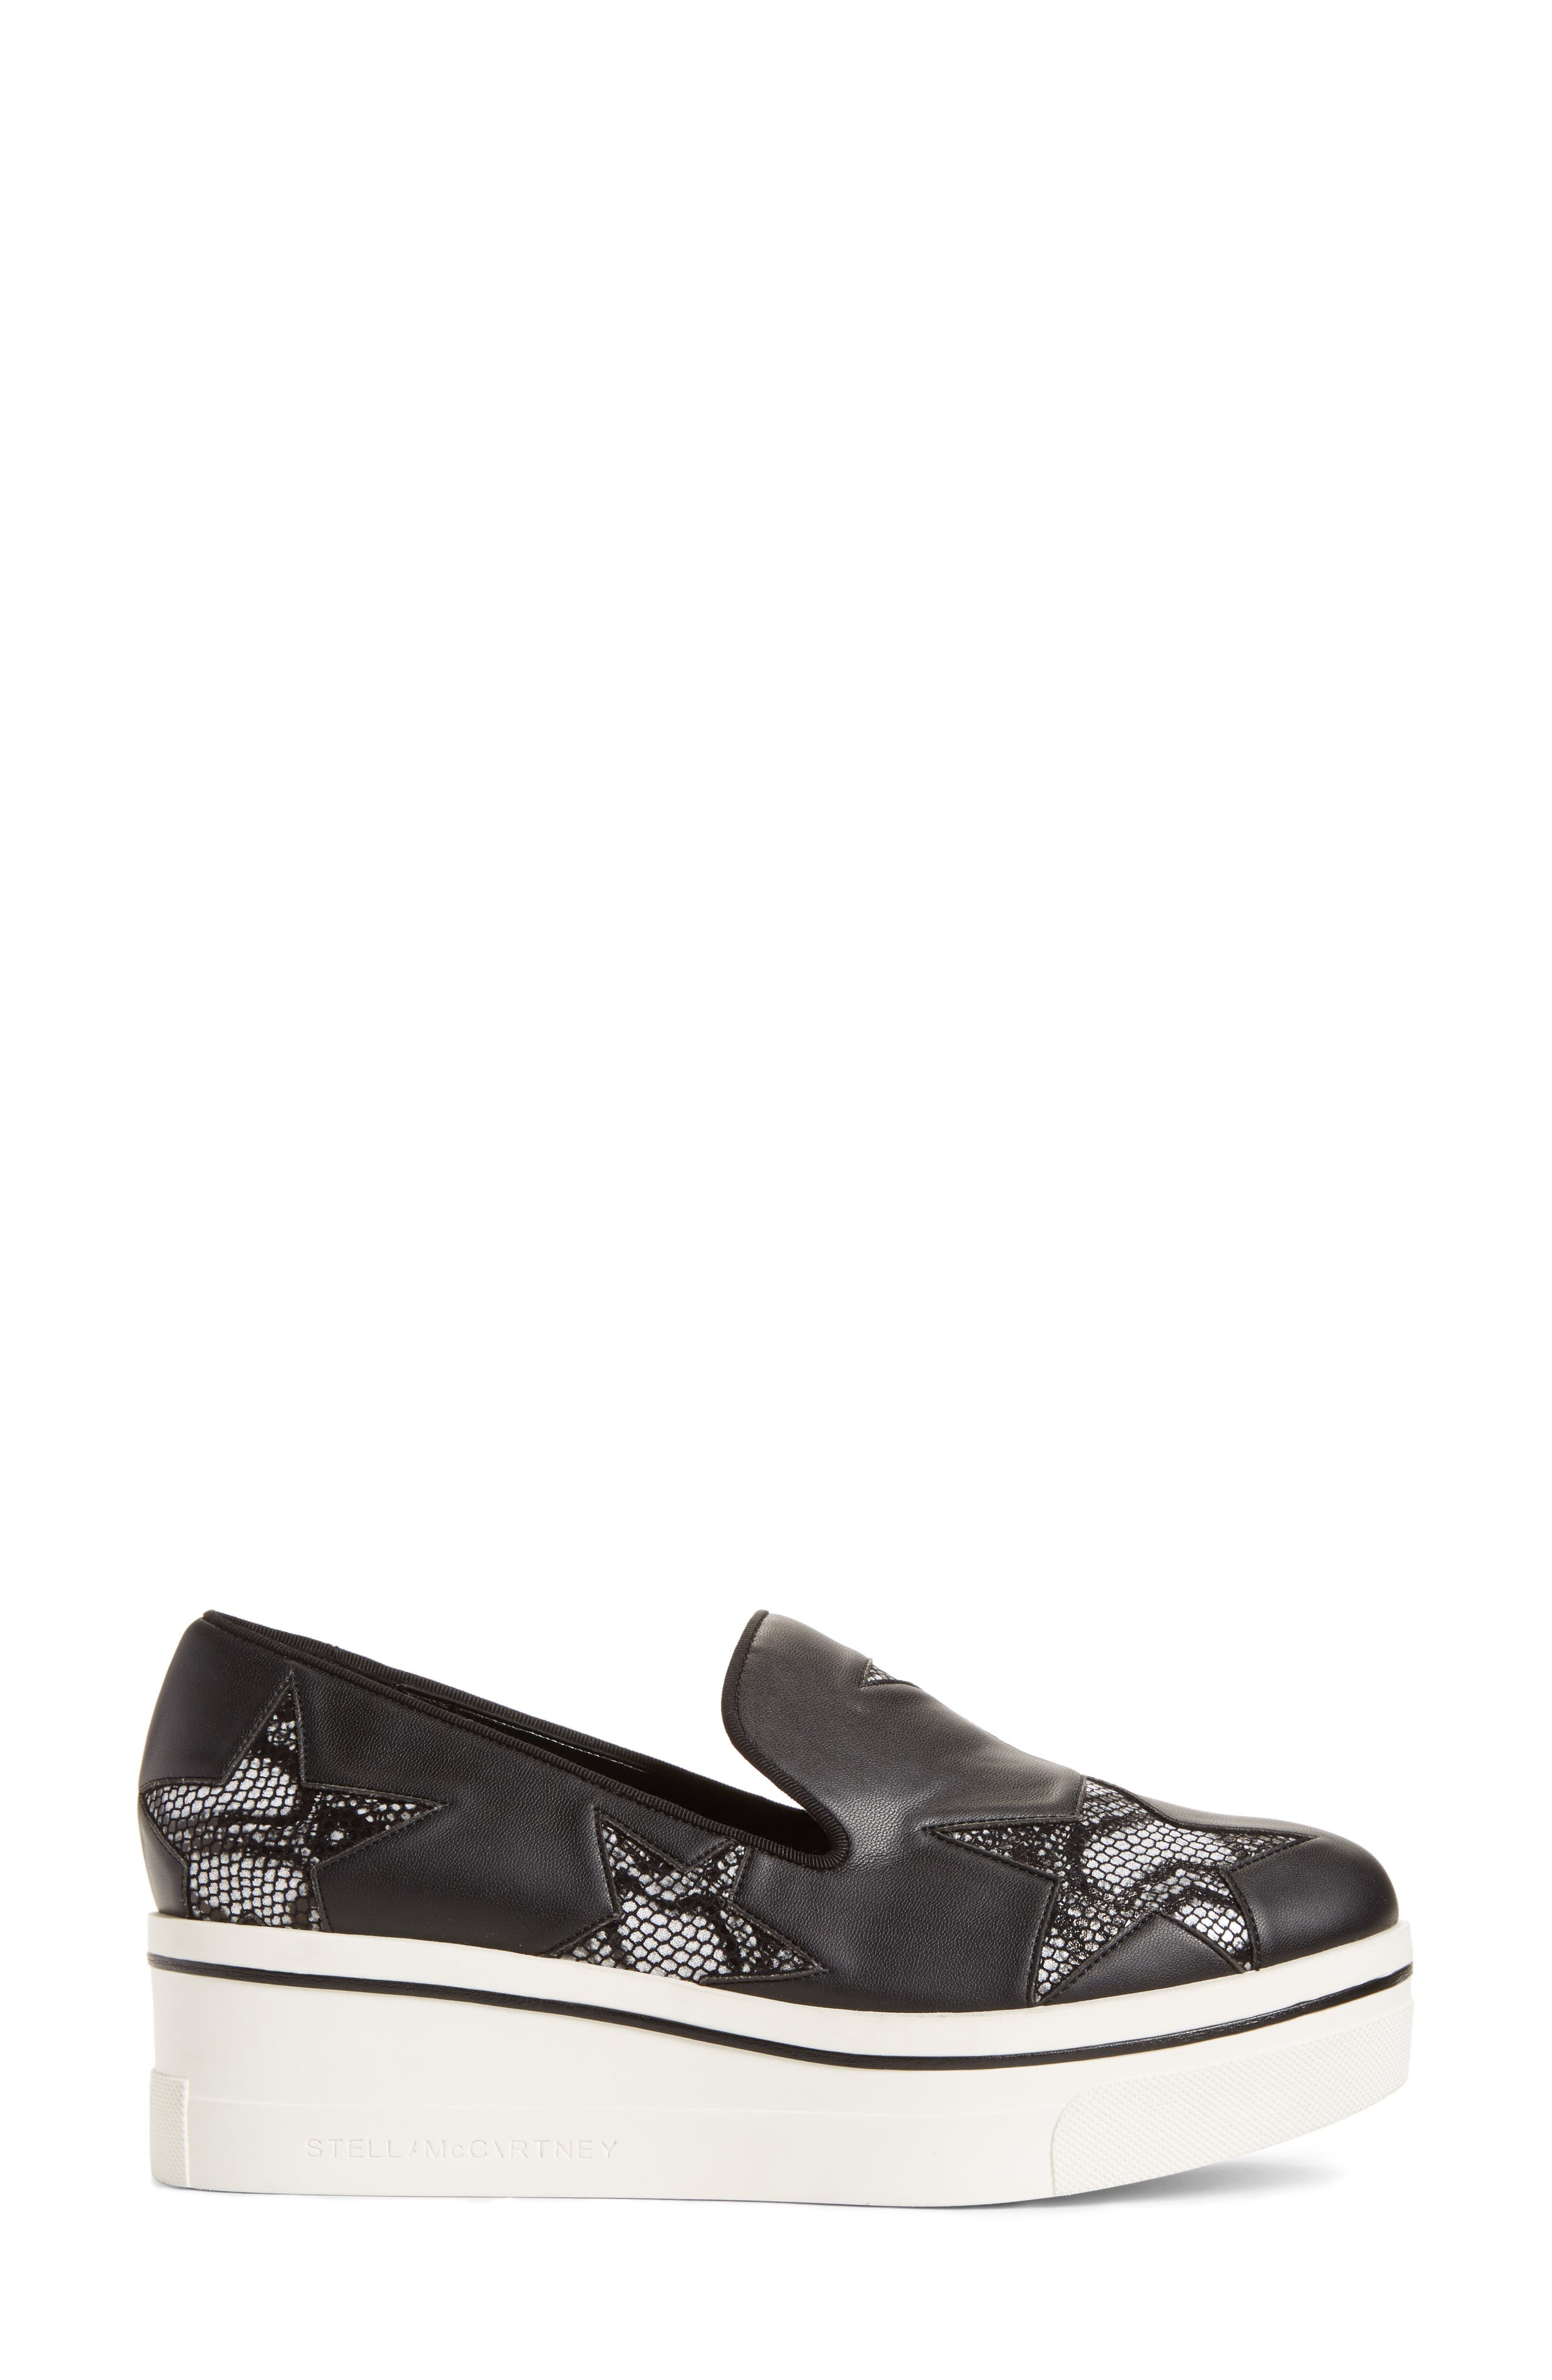 Alternate Image 3  - Stella McCartney Binx Stars Platform Sneaker (Women)